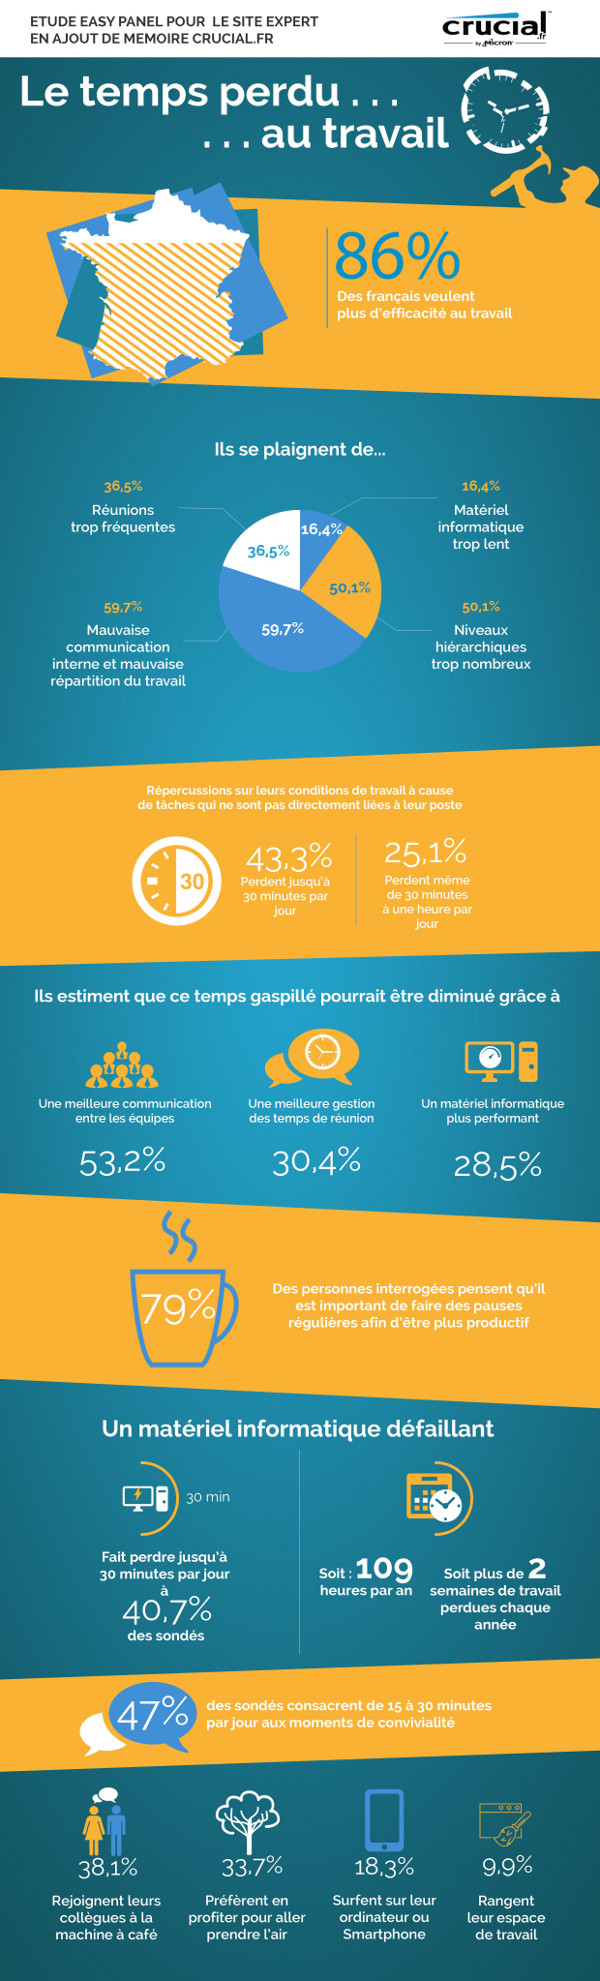 Crucial_infographieEfficaciteautravail_small